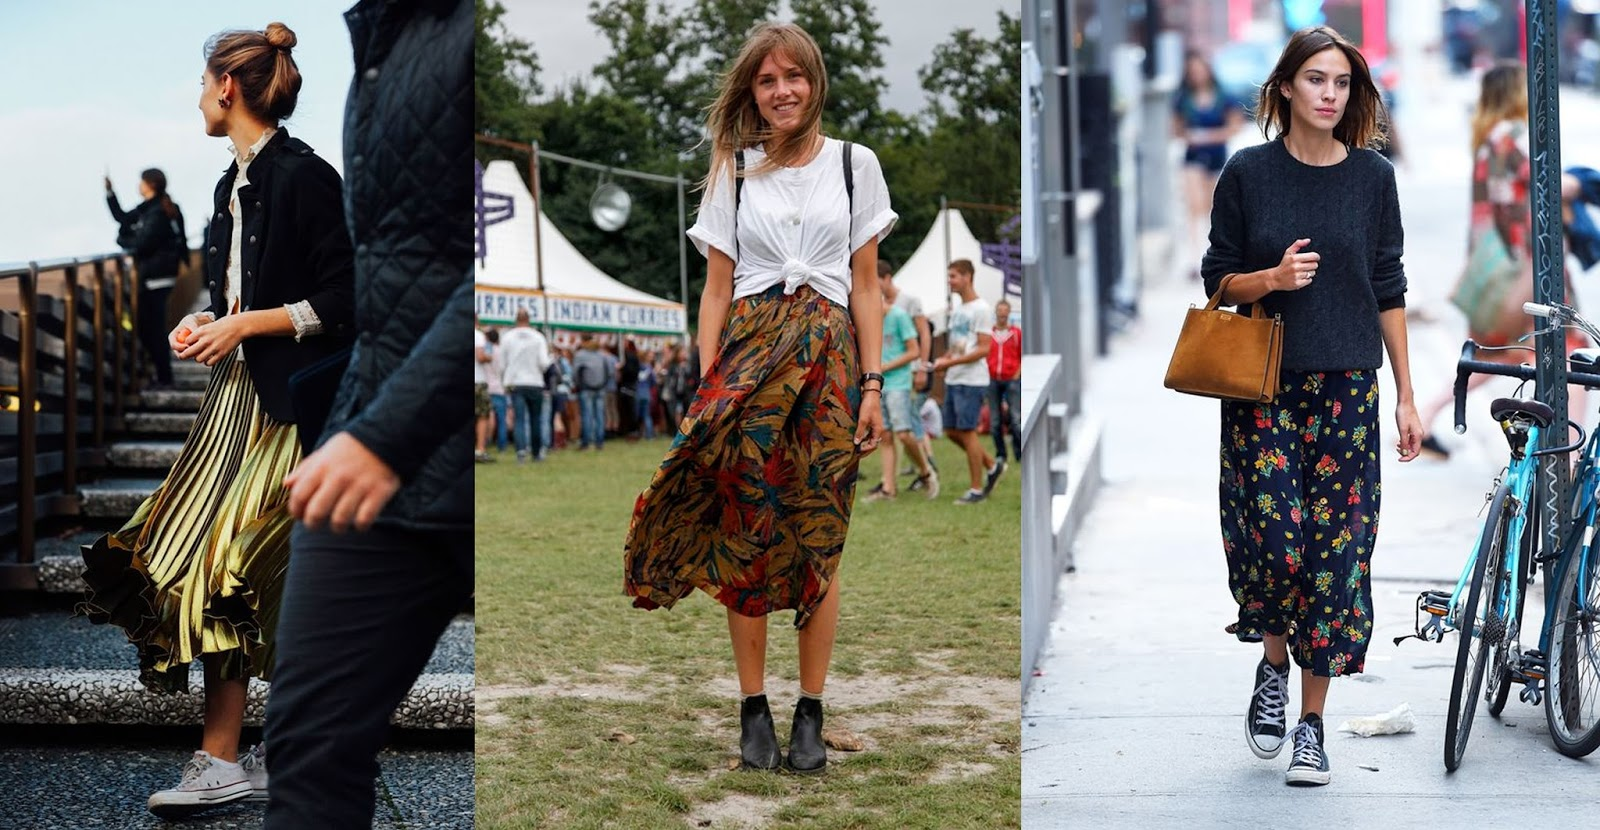 pleated skirt inspiration from pinterest